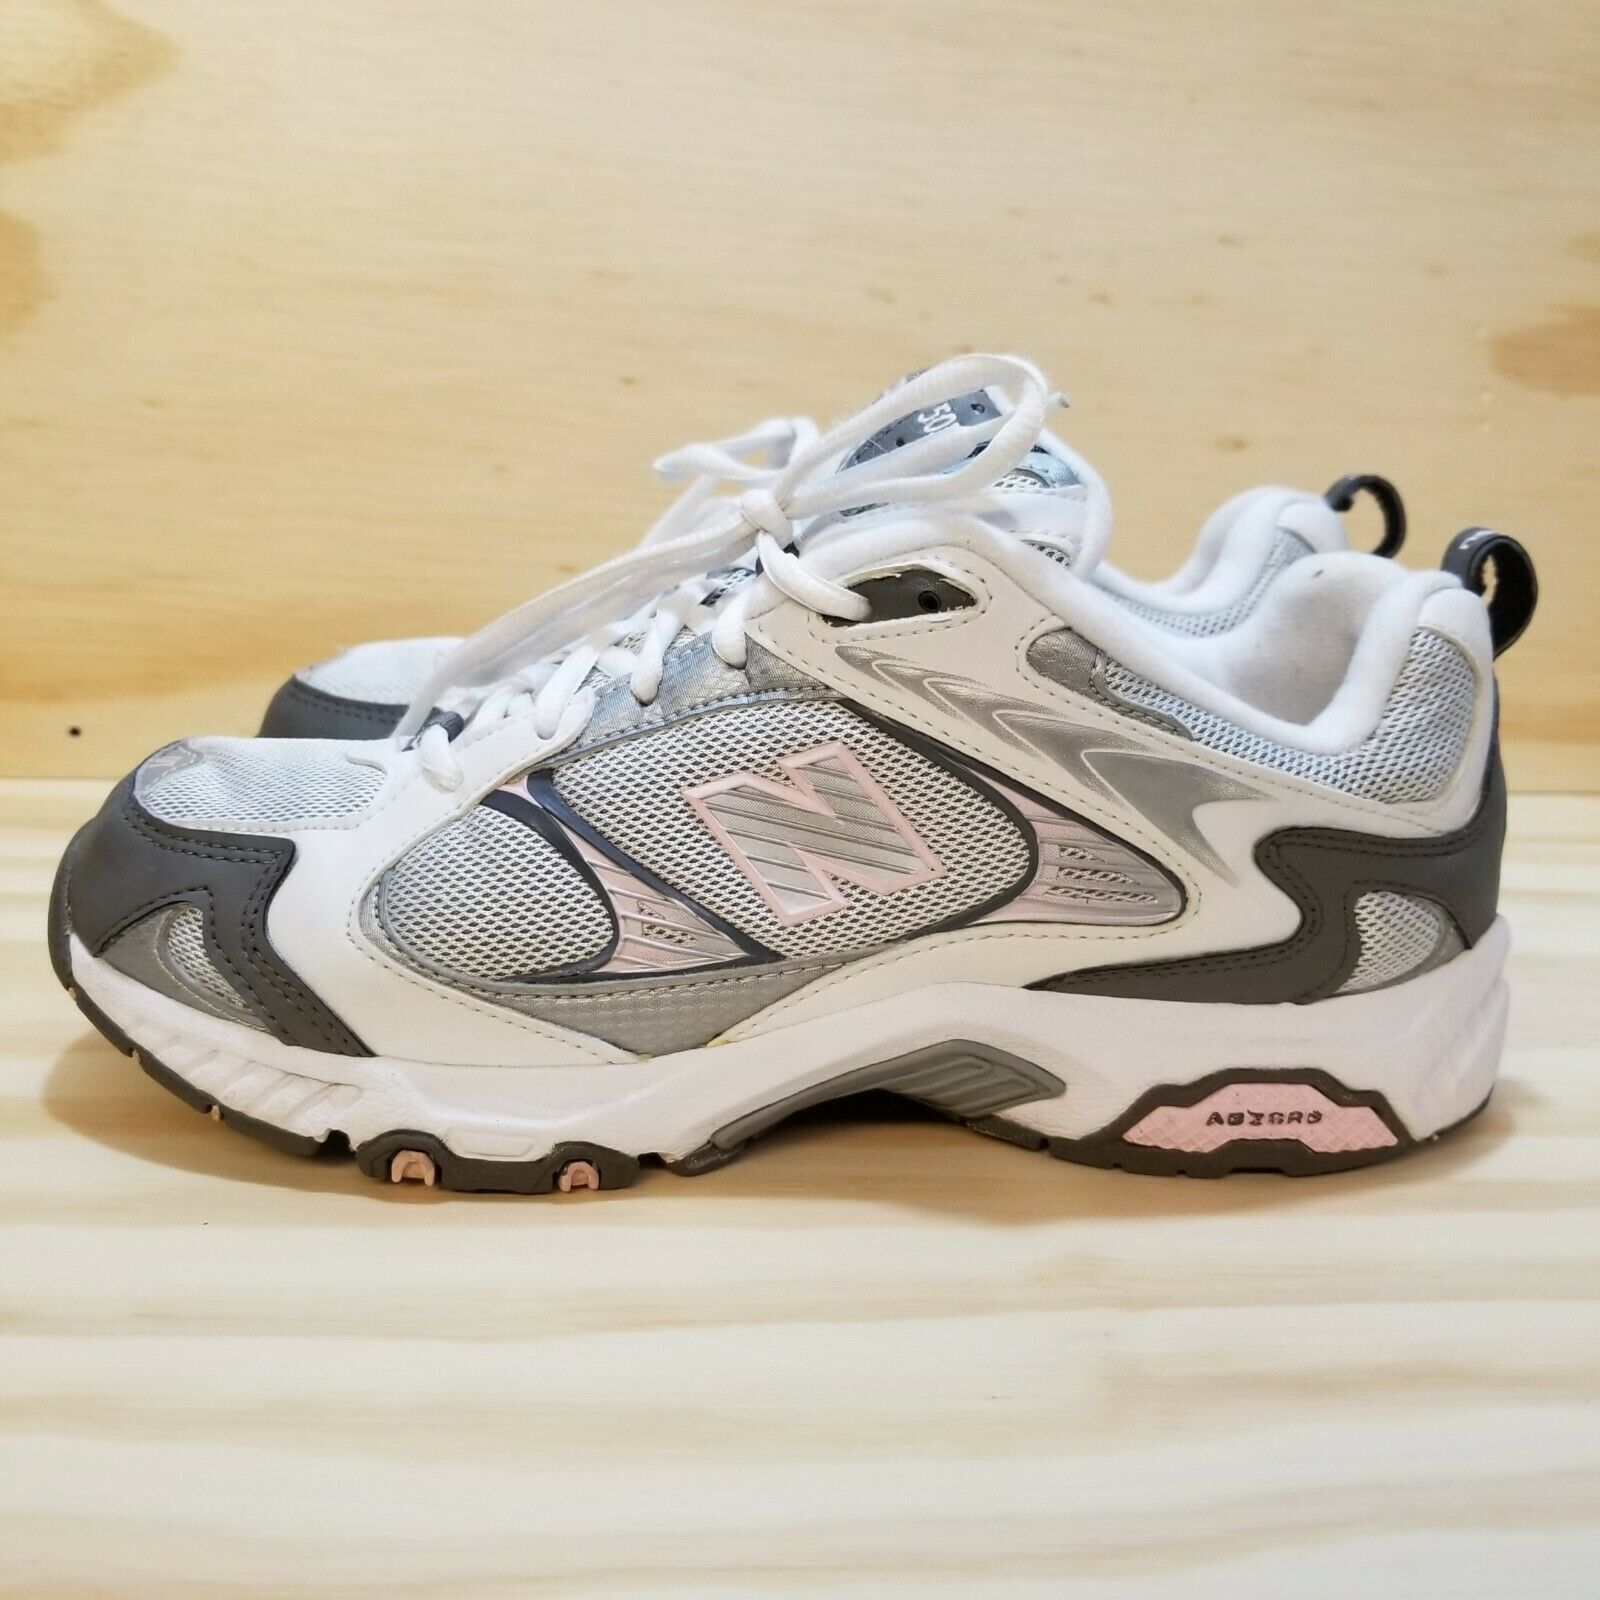 New Balance Womens 505 Training Workout Fitness Sneakers Size 8 Laces White Pink